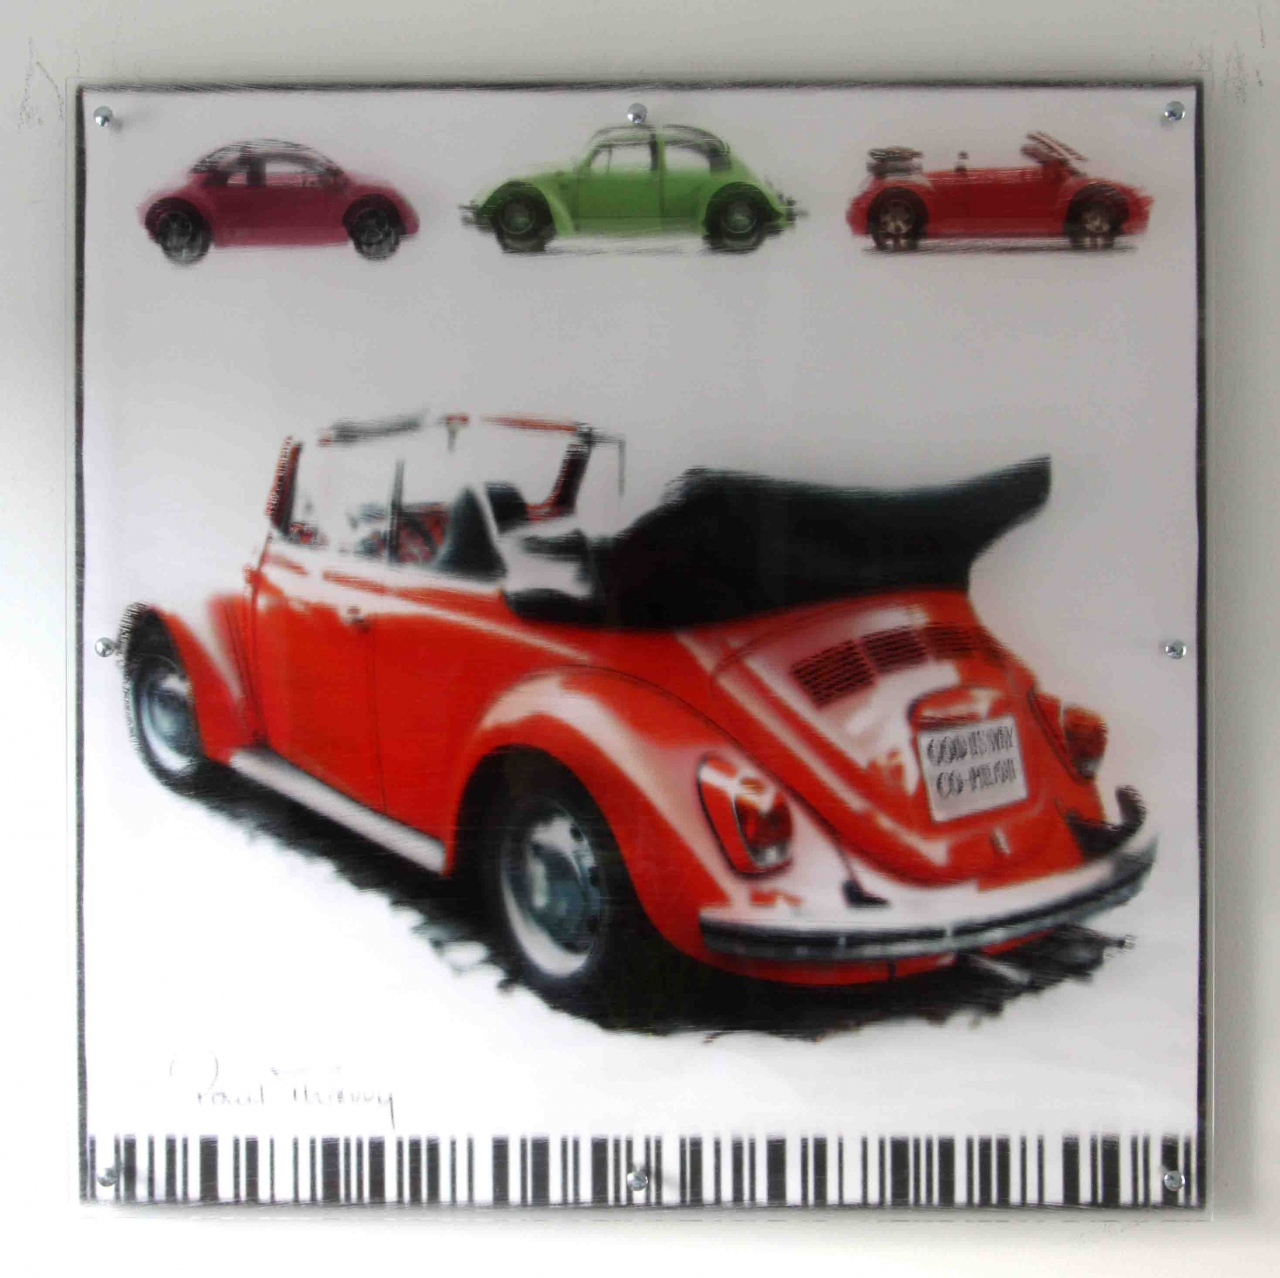 Made in Germany (Beetle)